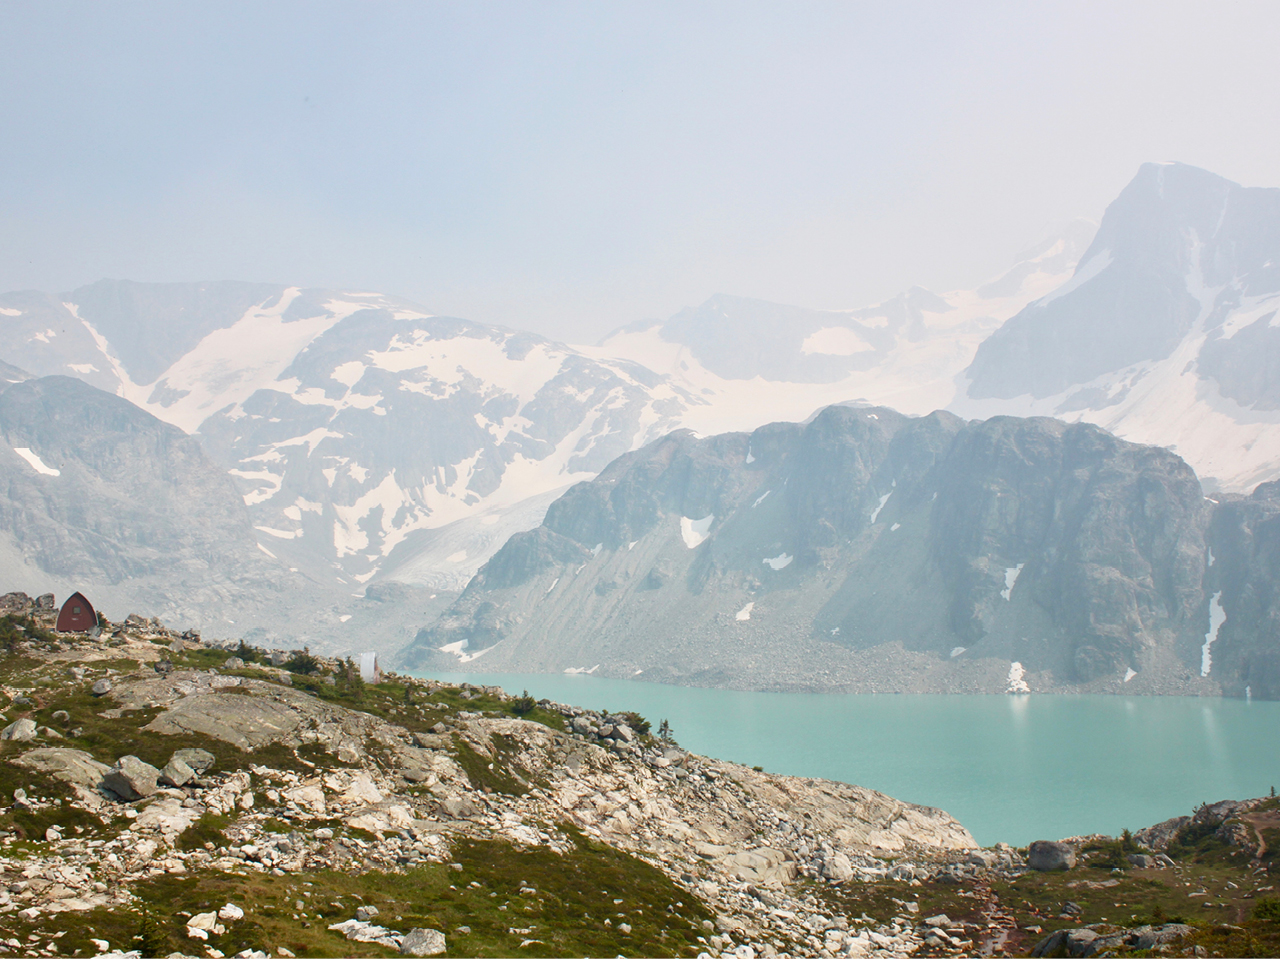 A view of Wedgemount Lake, near Whistler, B.C.